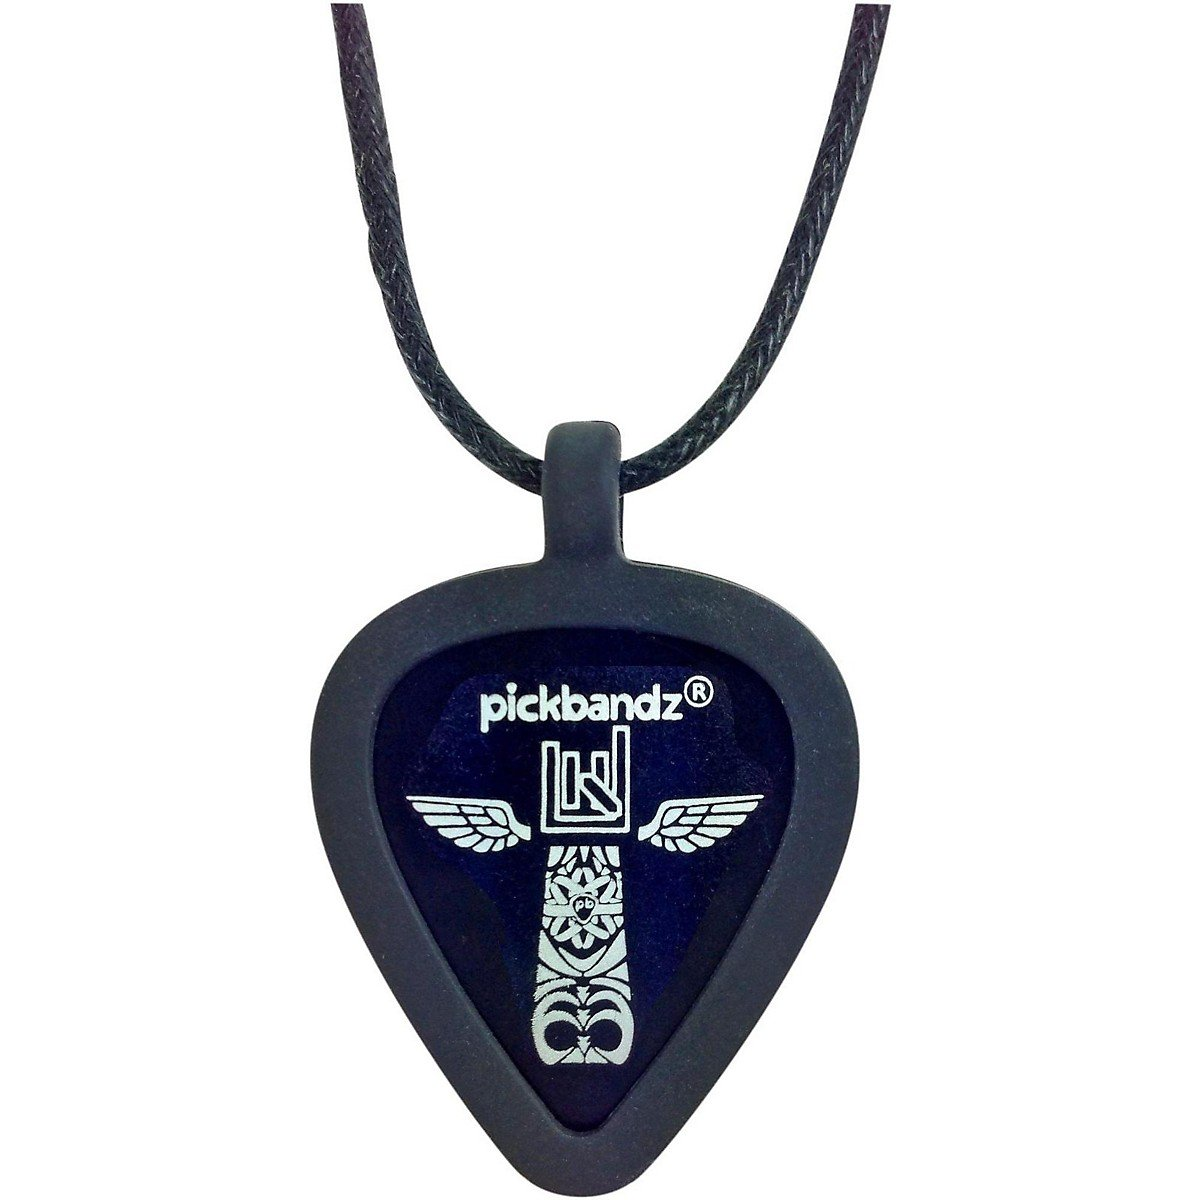 'Guitarra epicb cuello patente Epic negro Pick Holder PickBandz EpicBlack